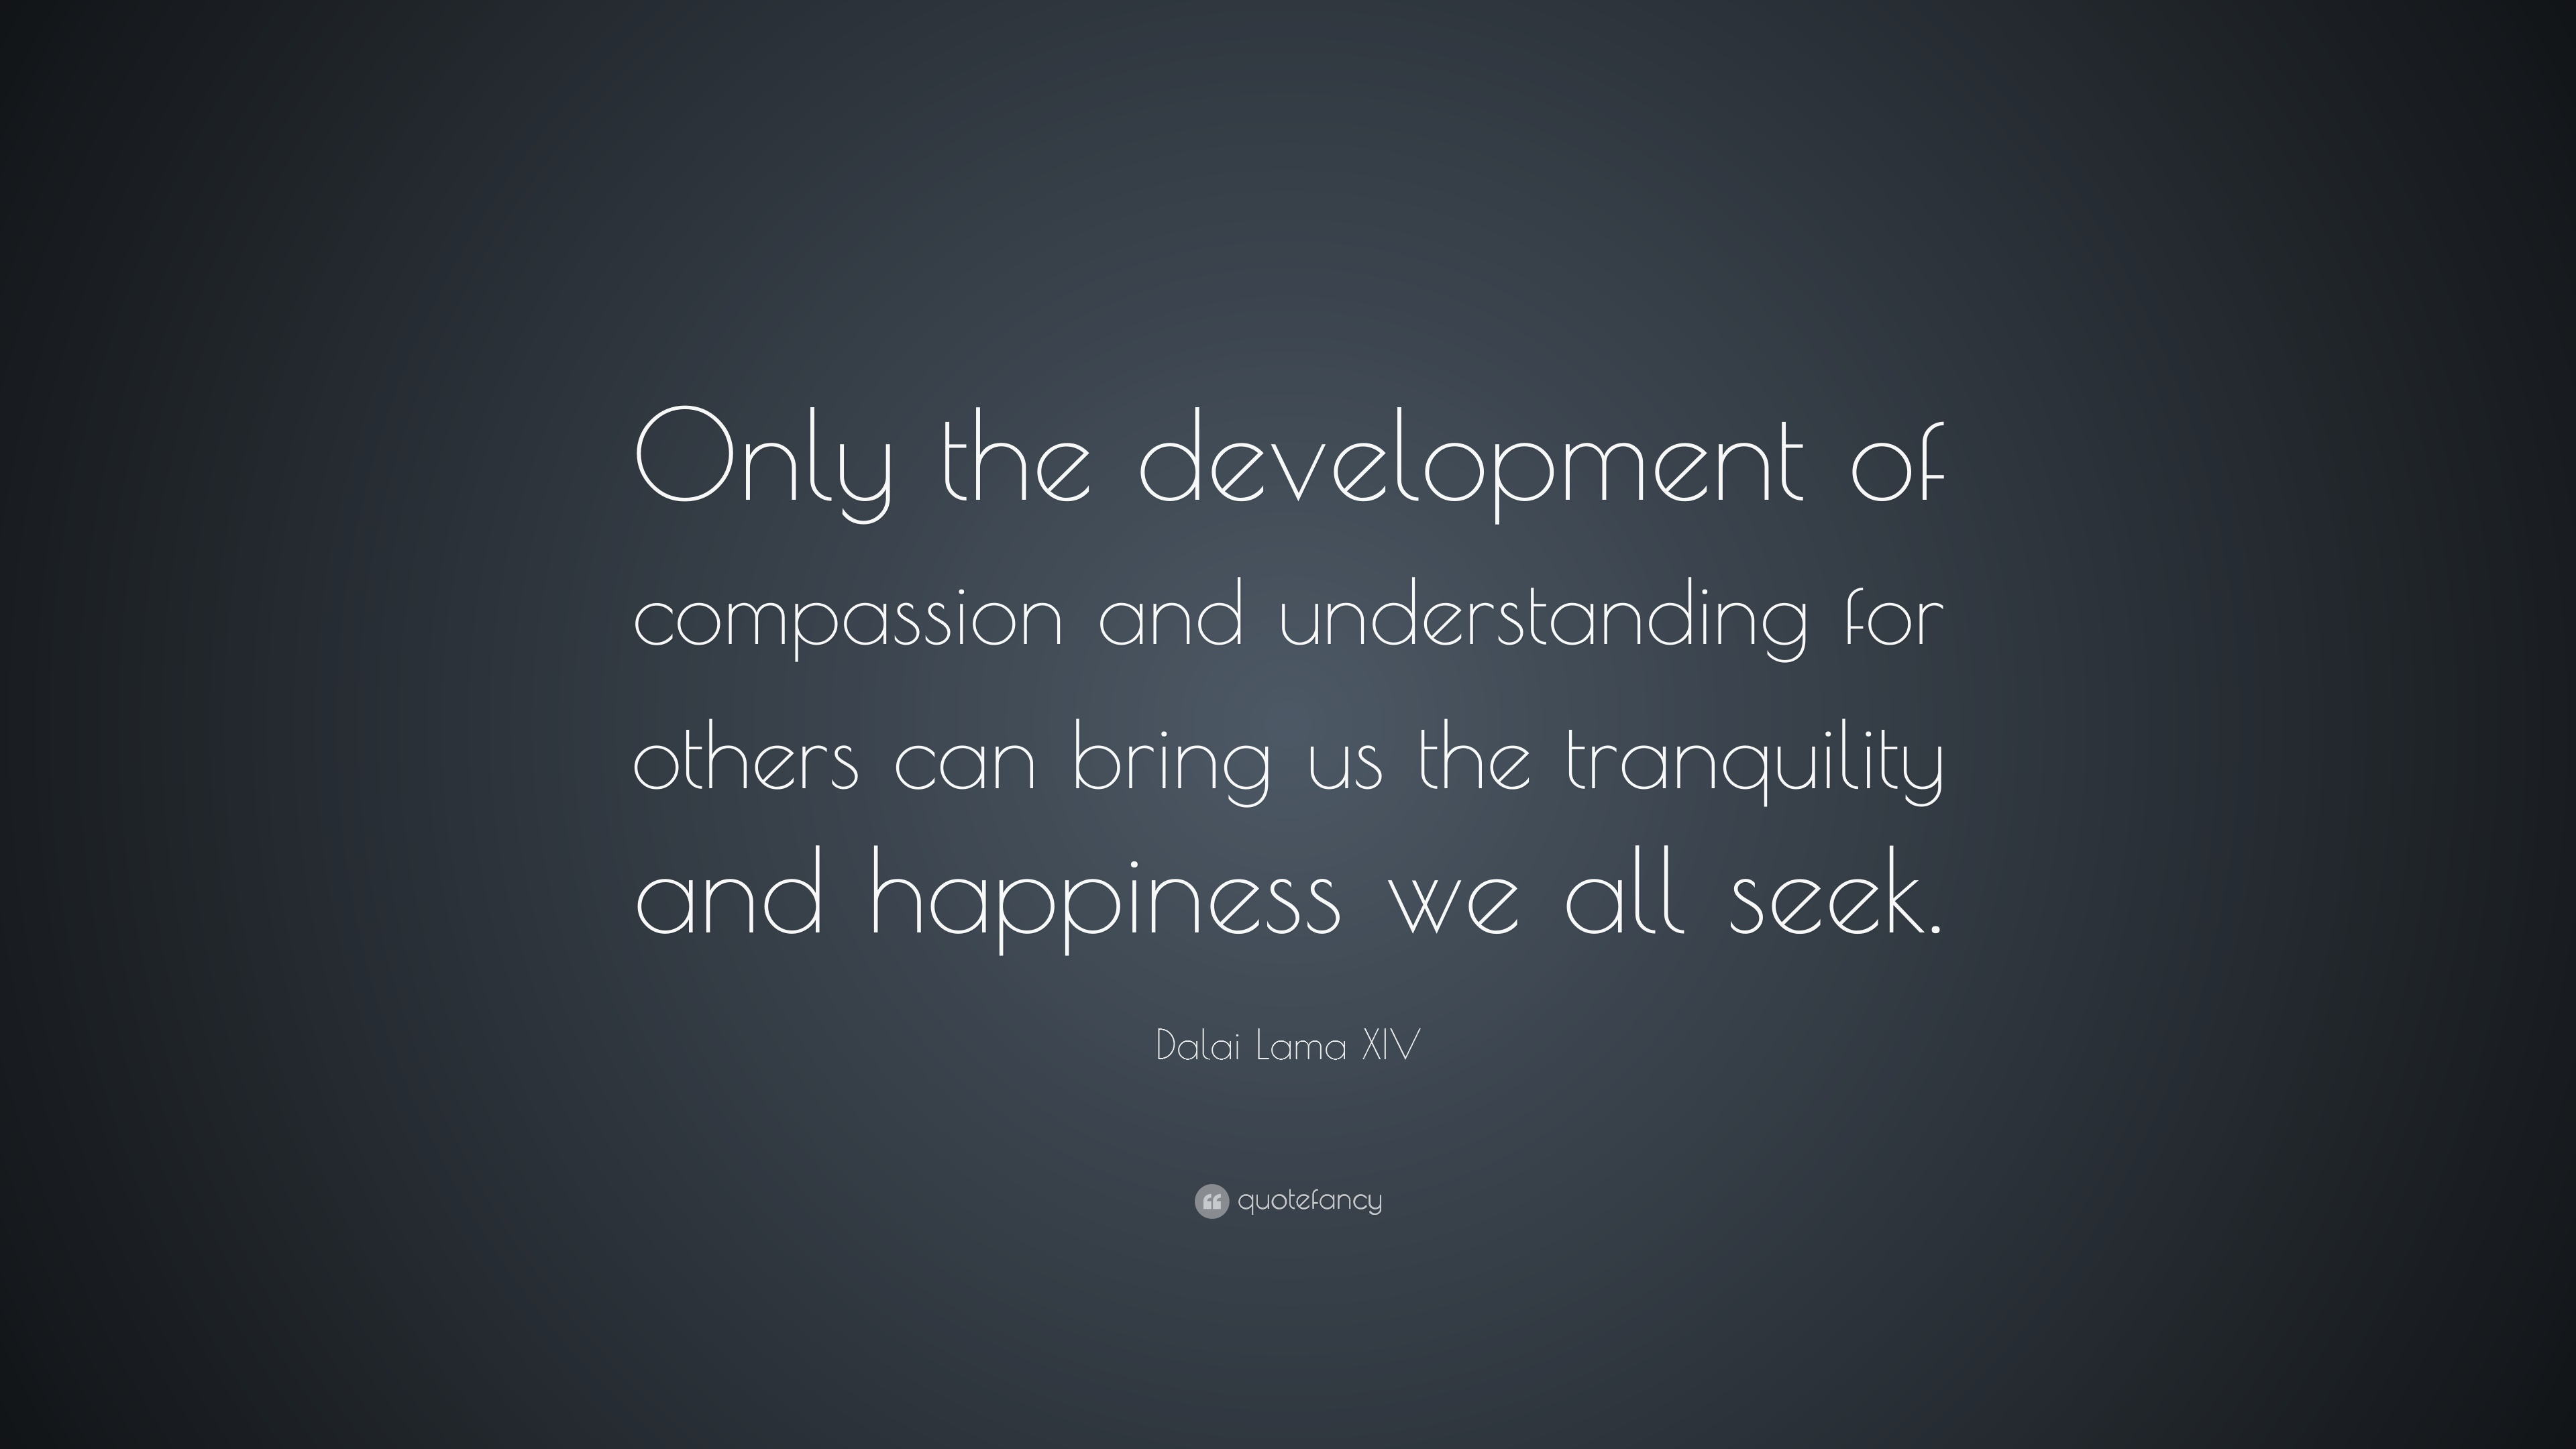 Dalai Lama Xiv Quote Only The Development Of Compassion And